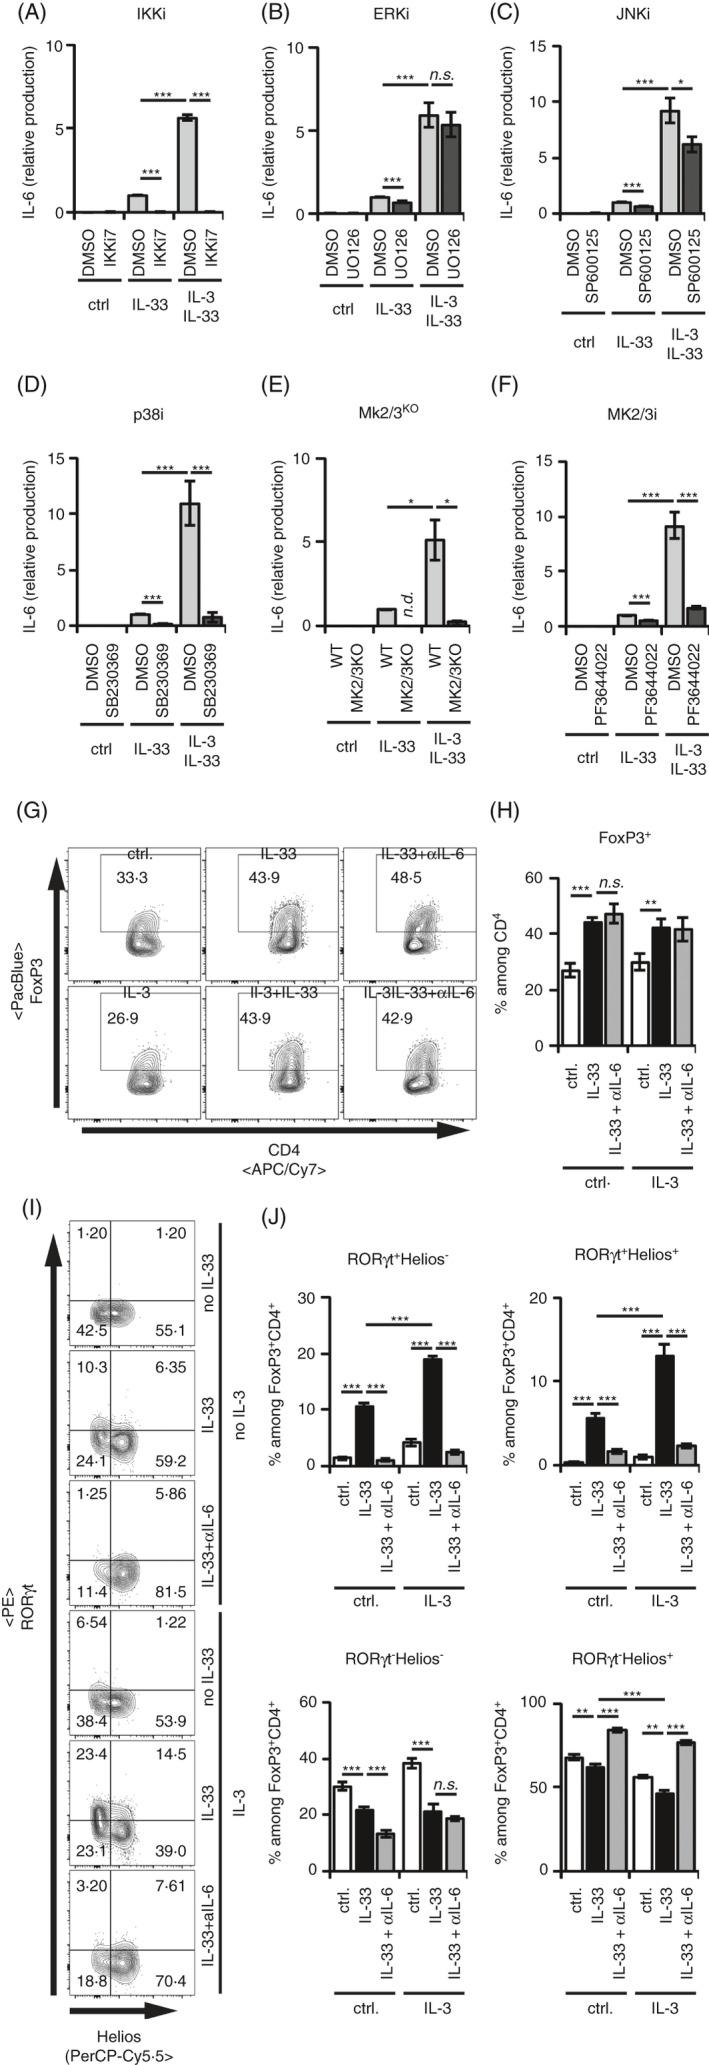 IL‐3‐enhanced IL‐33‐induced RORγt + T reg generation at the expense of RORγt − Helios + T regs is dependent on IKK2 and on the p38‐MK2/3 module. (A‐F) BMMCs were cultured in medium alone or with 50 ng/ml recombinant IL‐33 for 24 h. IL‐6 levels in the supernatants were analysed by ELISA. If indicated, BMMCs were costimulated with 50 ng/ml recombinant IL‐3. All data points were normalized to IL‐33‐induced levels of IL‐6. Data are pooled from independent BMMC cultures. (A) Preincubation of the BMMC with IKKi7 ( n = 4). (B) Preincubation of the BMMC with UO126 ( n = 17). (C) Preincubation of the BMMC with SP600125 ( n = 15). (D) Preincubation of the BMMC with SB203580 ( n = 10). (E) MK2/3 dKO BMMCs were used ( n = 4). (F) Preincubation of the BMMC with PF3644022 ( n = 18). (G‐J) CD25 + CD4 + splenic T regs were cocultured with BMMCs in medium ± 50 ng/ml recombinant IL‐33 alone for 3 days. If indicated, 50 ng/ml recombinant IL‐3 or blocking anti‐IL‐6 antibody was added. Transcription factor expression of FoxP3 among CD4 + , and RORγt and Helios among FoxP3 + CD4 + T regs was analysed by flow cytometry in 2 independent experiments with BMMCs from 8 independent donors. (G) Representative FACS plots show FoxP3 + cells among CD4 + Th cells. (H) Diagram summarizes FoxP3 + cells among CD4 + Th cells. (I) Representative FACS plots of RORγt + and Helios + cells among FoxP3 + CD4 + T regs . (J) Diagrams summarize RORγt + Helios − , RORγt + Helios + , RORγt − Helios + and RORγt − Helios − cells among FoxP3 + CD4 + T regs . Diagrams show average values of all experiments ± SEM. Statistics were done with Student's t‐ test: n.s . not significant; * p